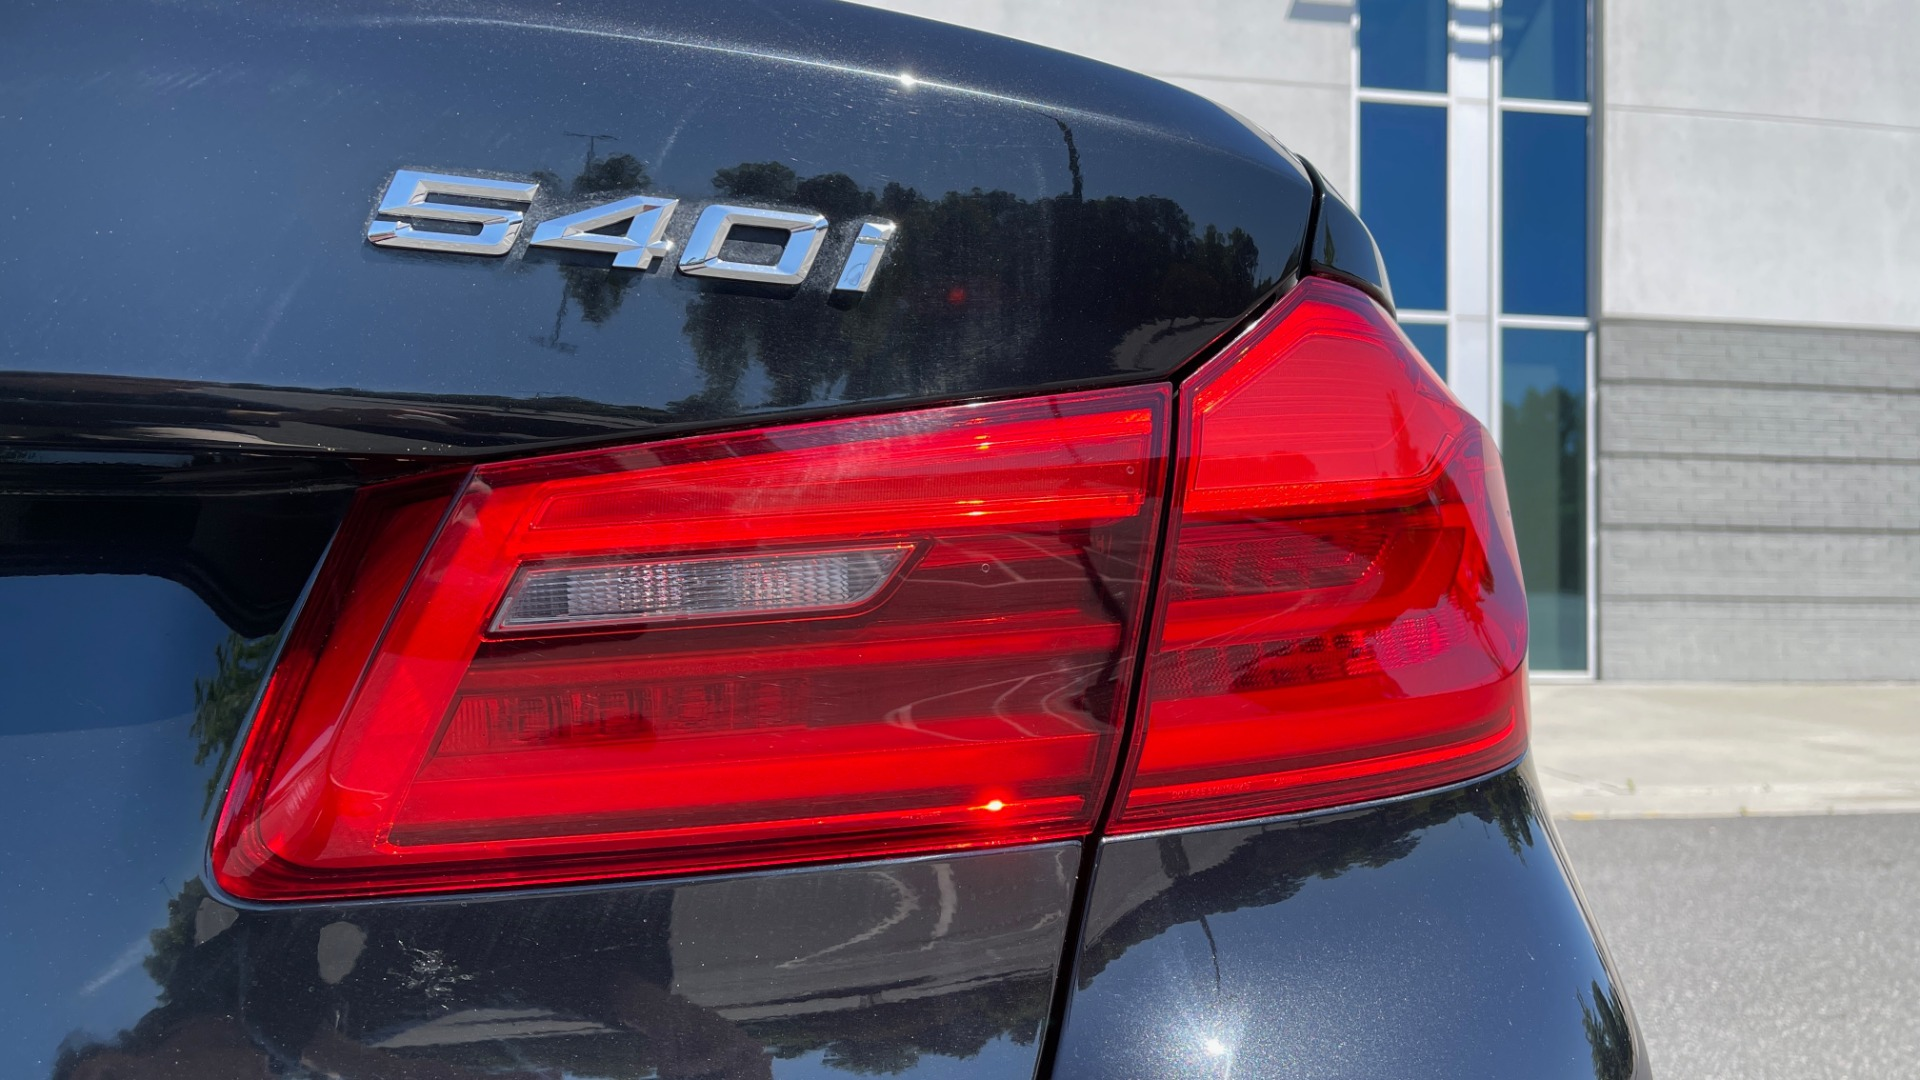 Used 2018 BMW 5 SERIES 540I XDRIVE PREMIUM / NAV / PARK ASST / WIRELESS CHARGING H/K SND for sale $38,395 at Formula Imports in Charlotte NC 28227 21